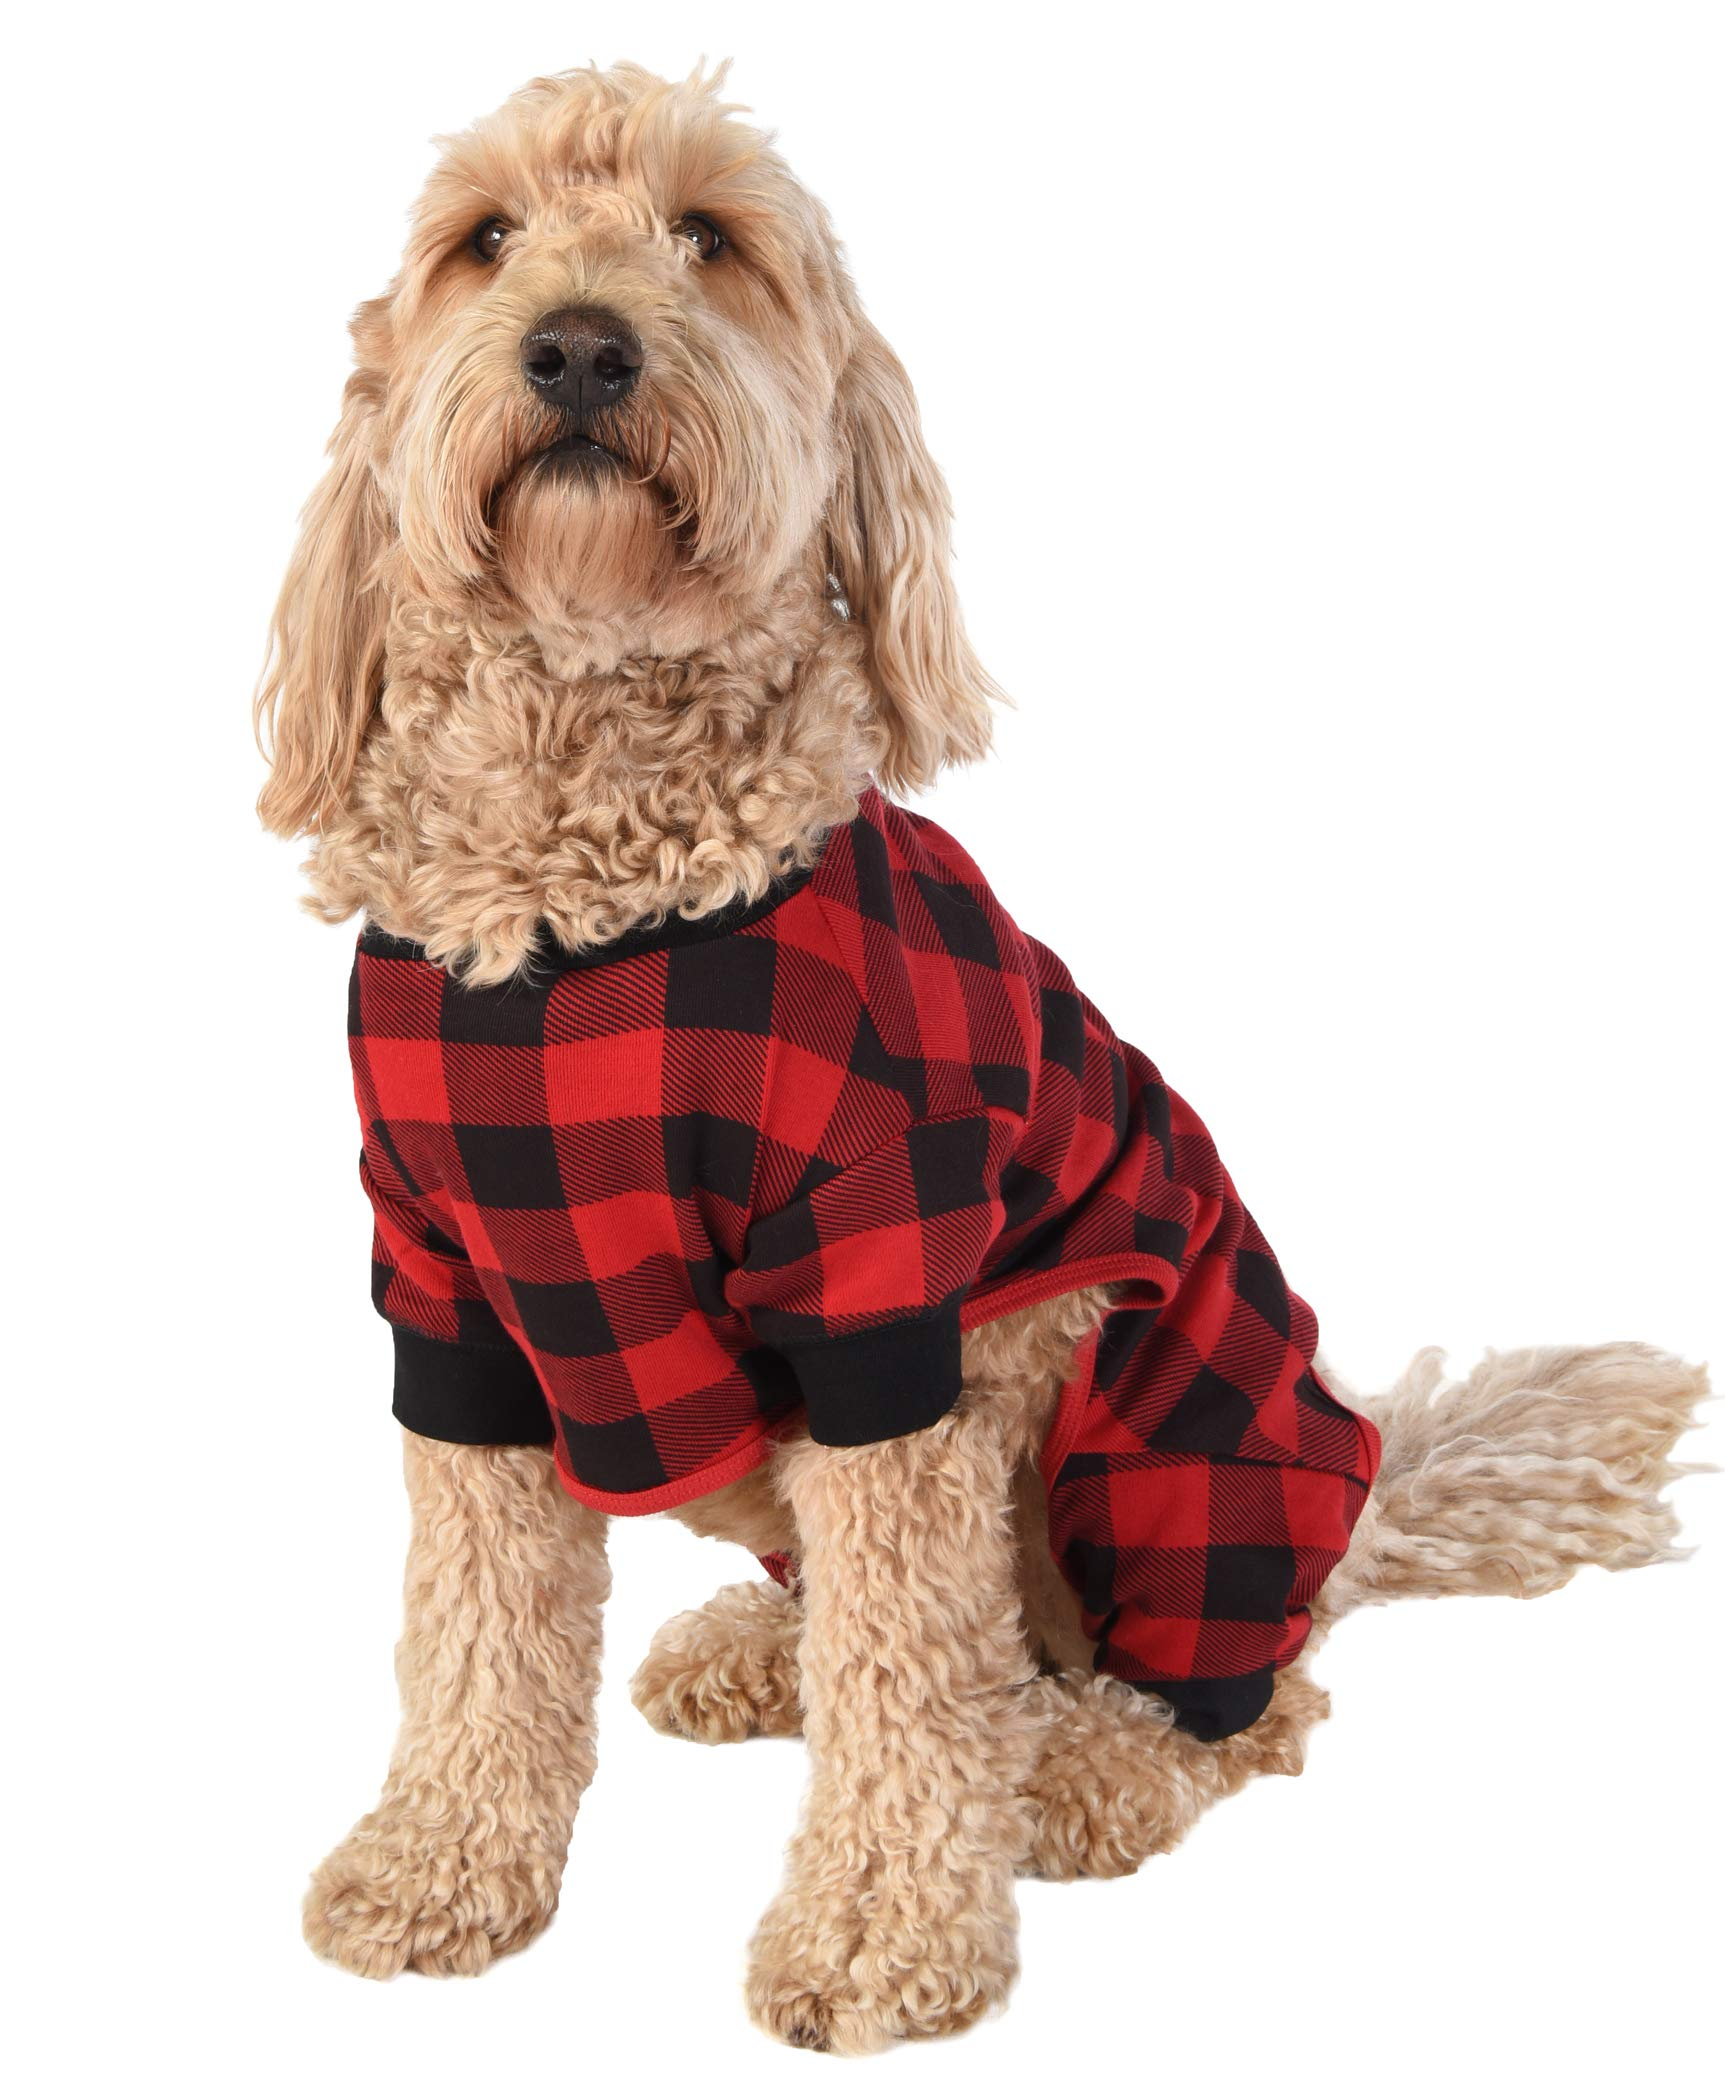 Plaid Bear Cheeks Flapjacks Dog Flapjack Onsie Sweater by LazyOne | Adult Kid Infant Dog Family Matching Pajamas (X-Large) by Lazy One